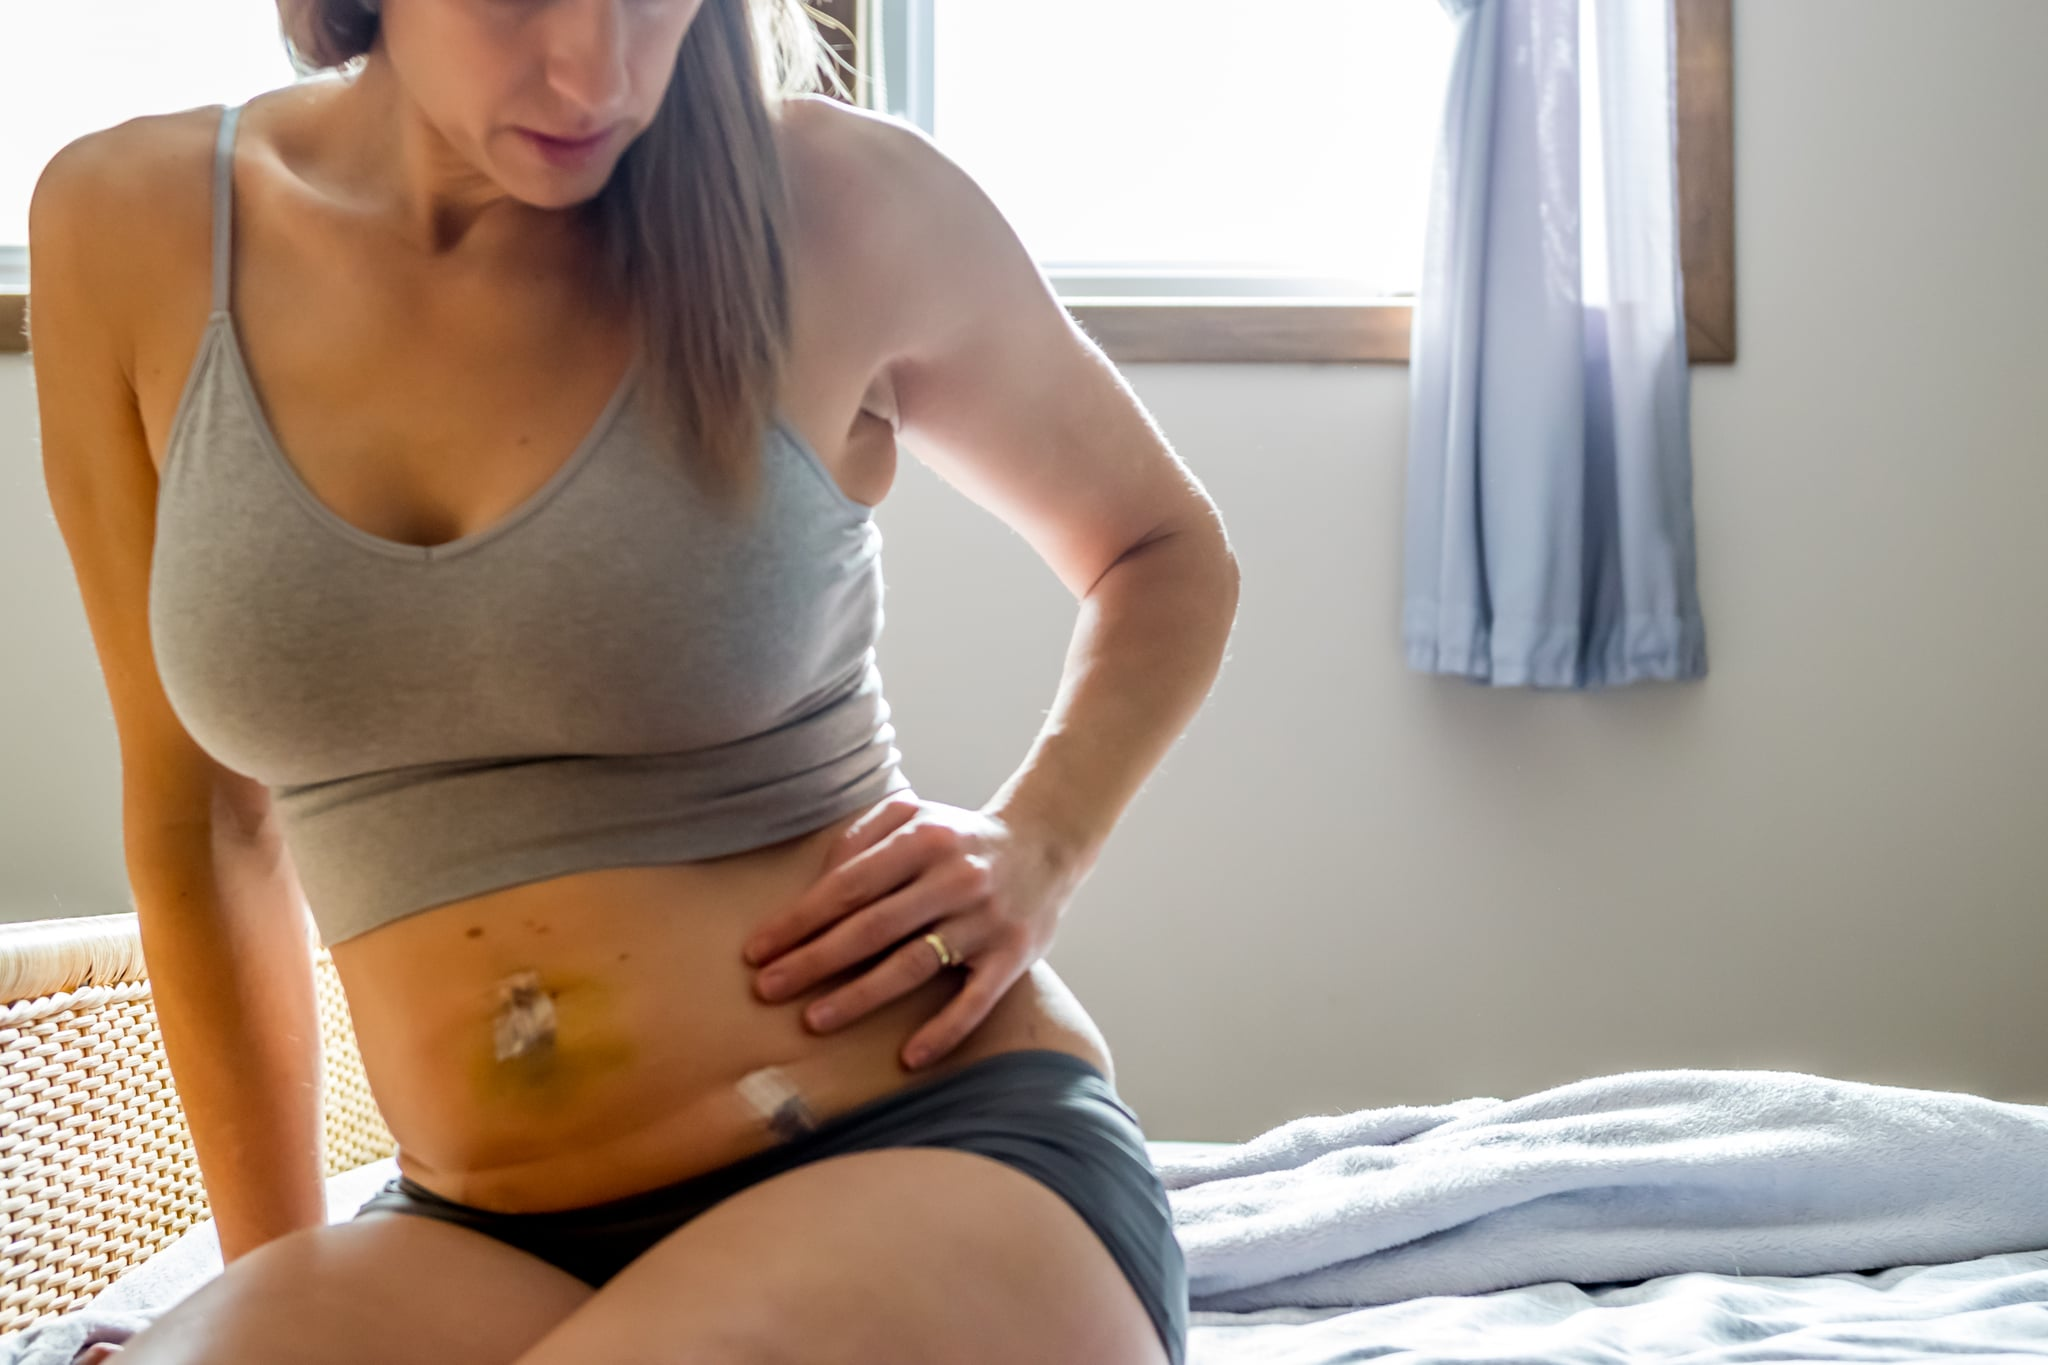 Woman resting after fallopian tube removal surgery to prevent ovarian cancer.